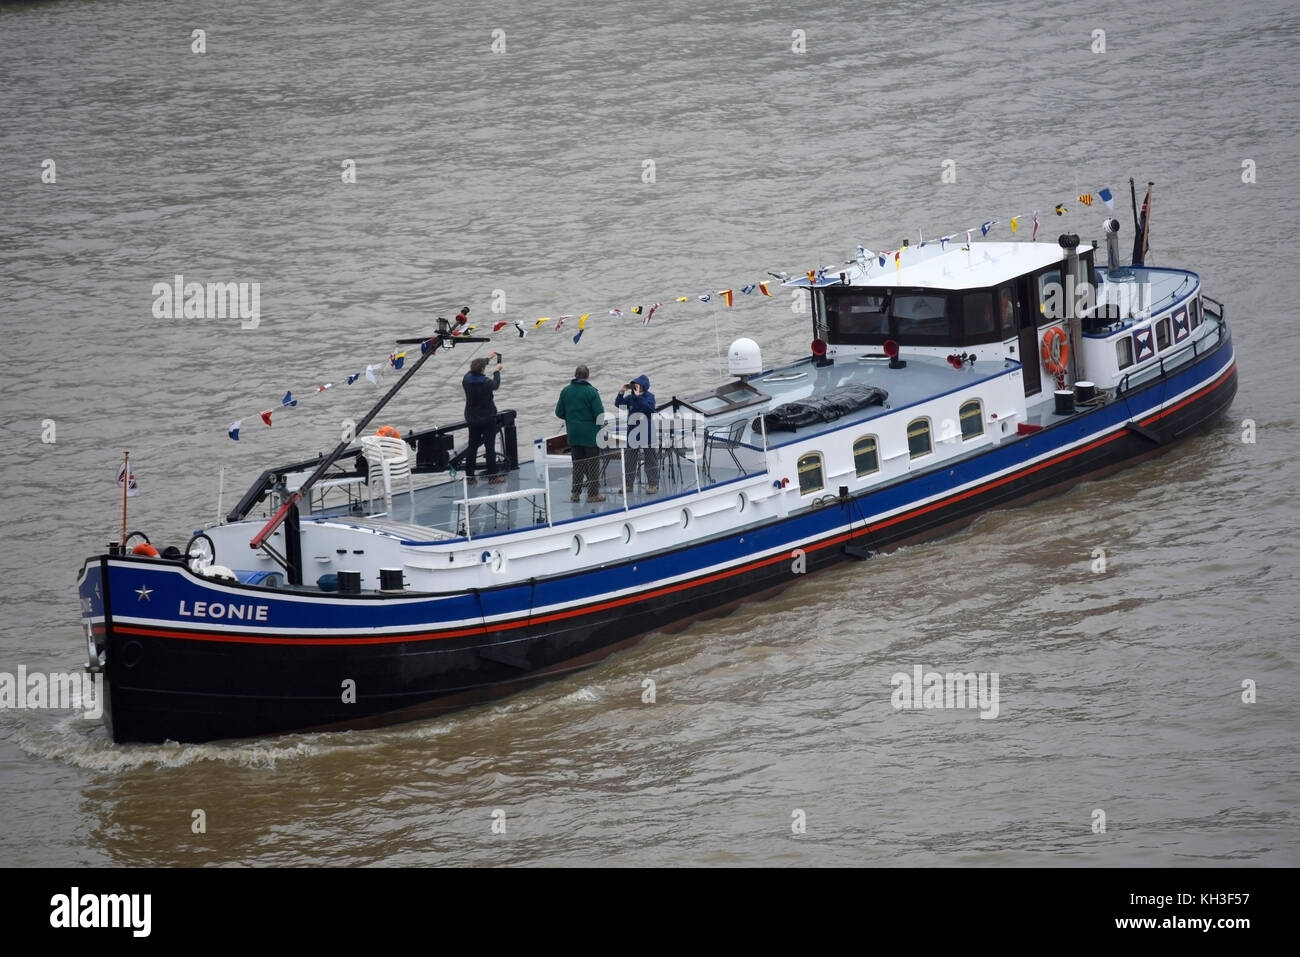 Leonie in the flotilla for the Lord Mayor's Show in London. River Thames. Space for copy - Stock Image